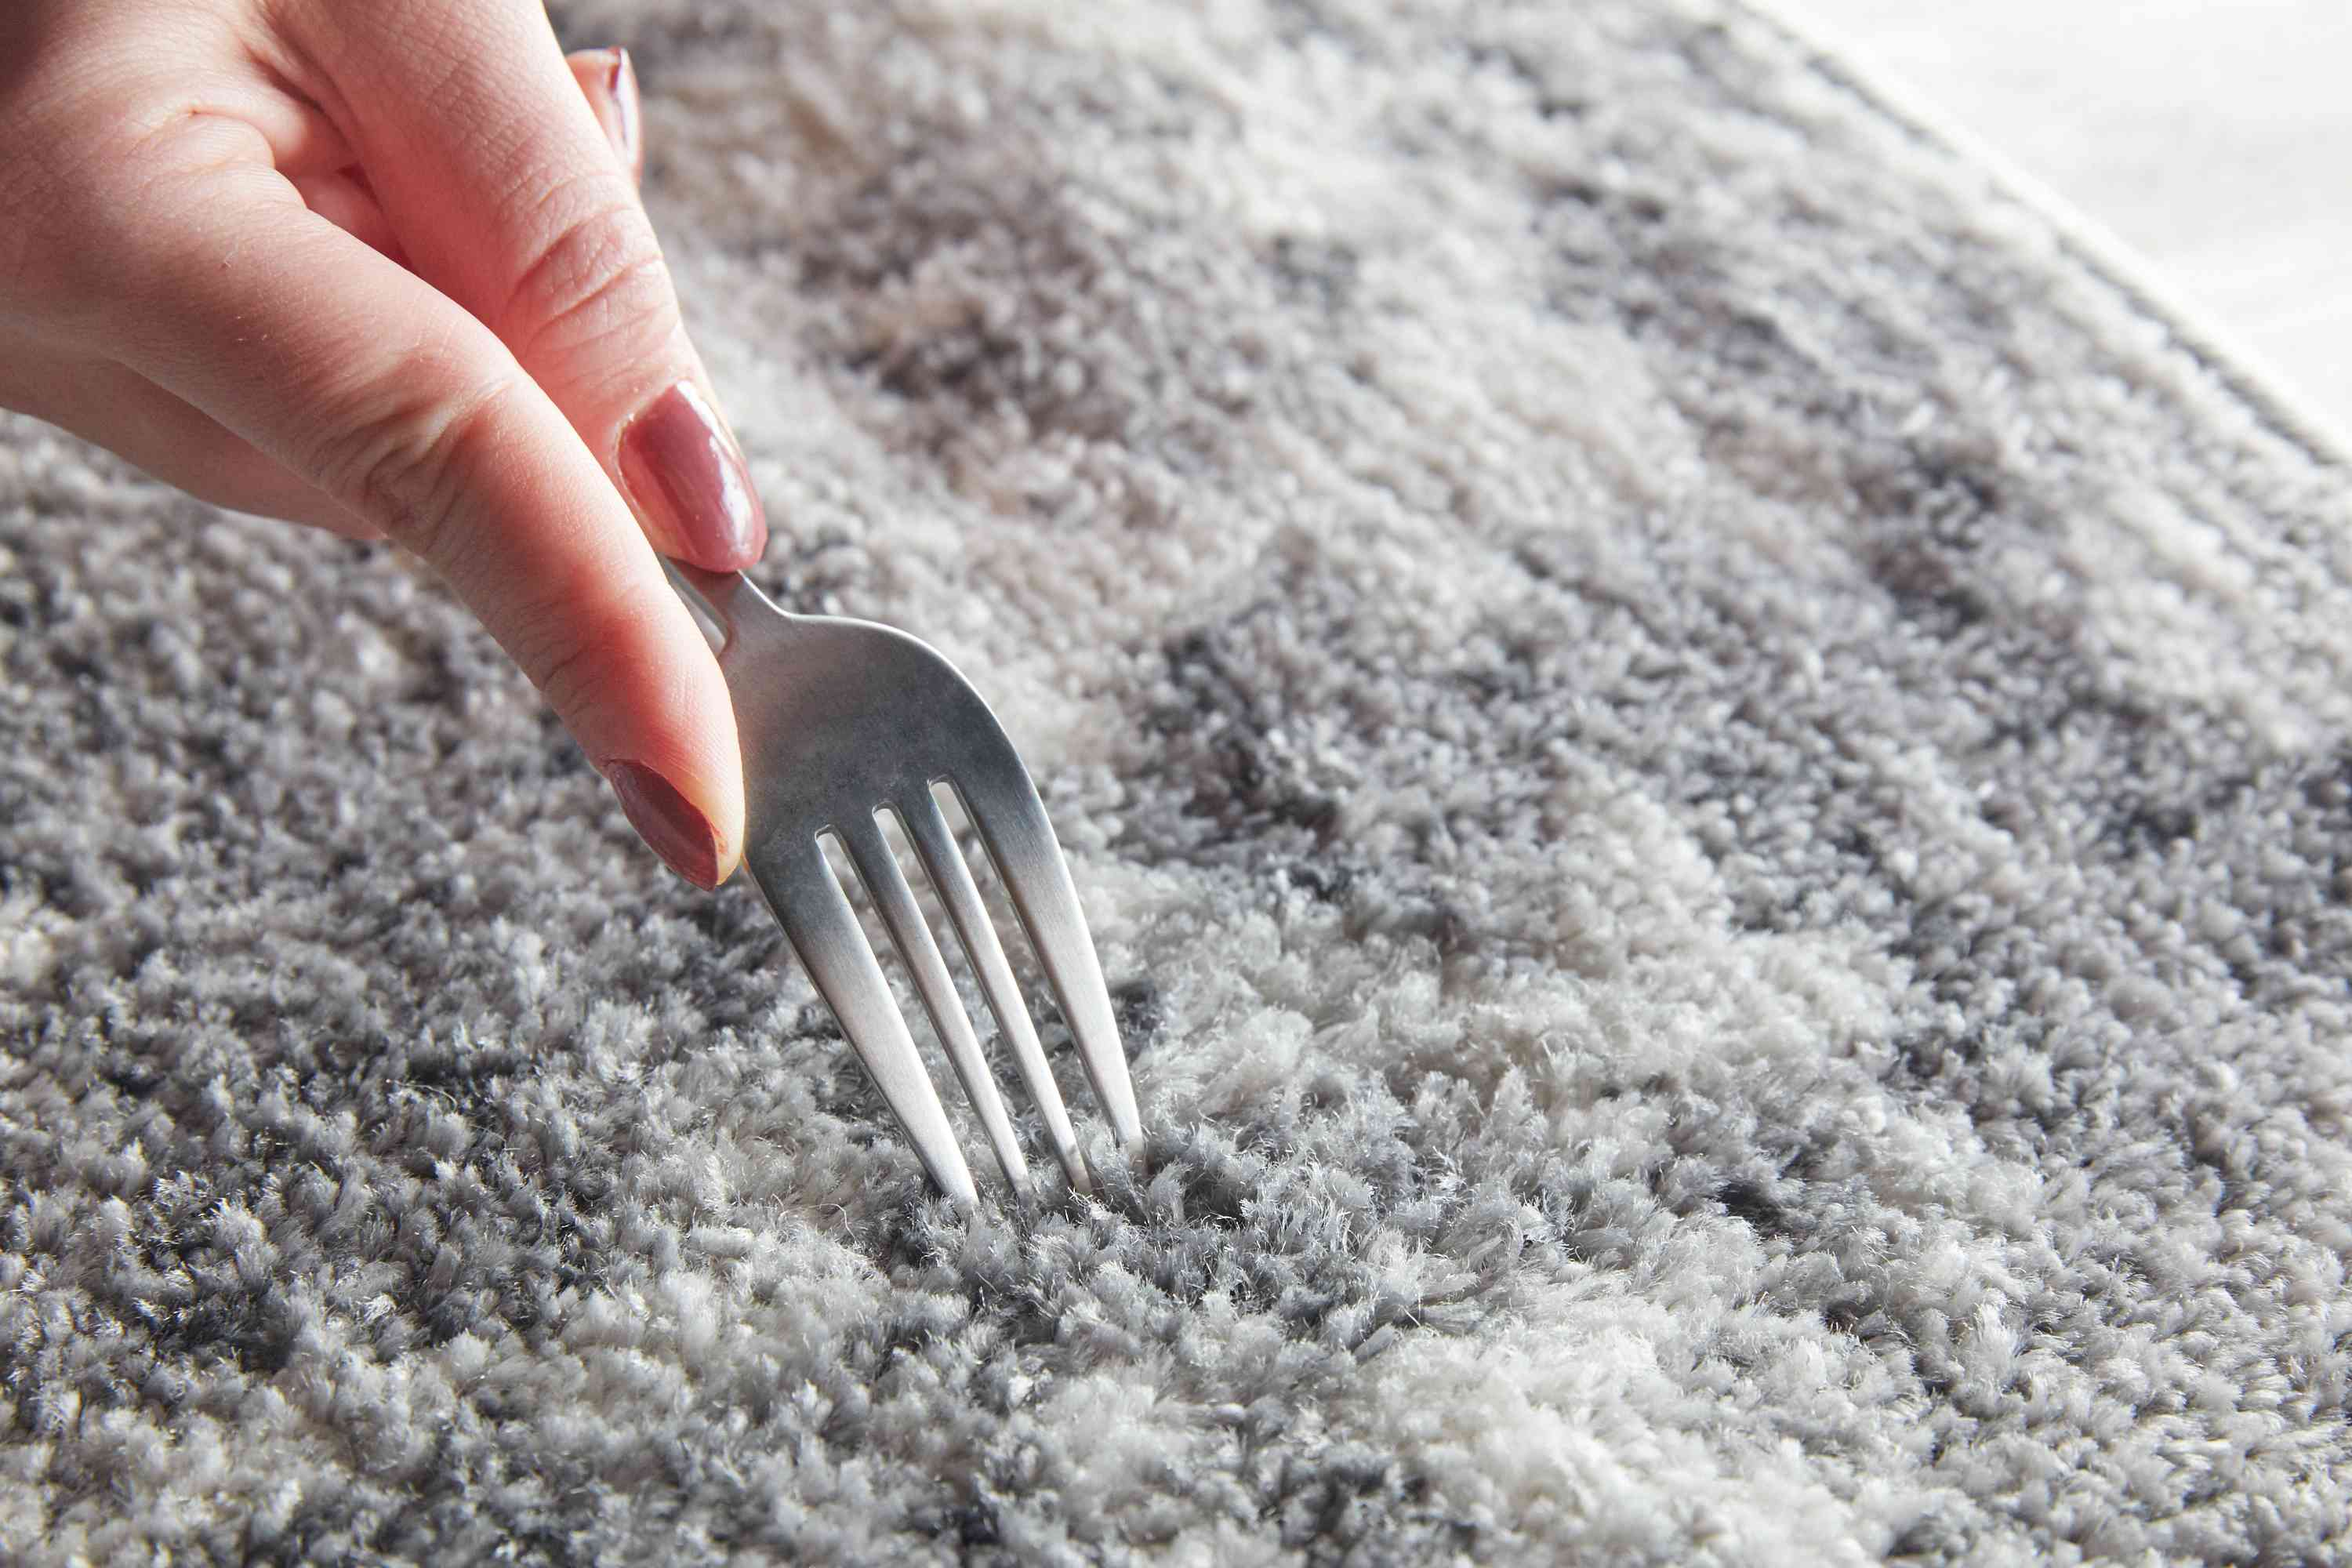 using a fork to fluff up the rug fibers